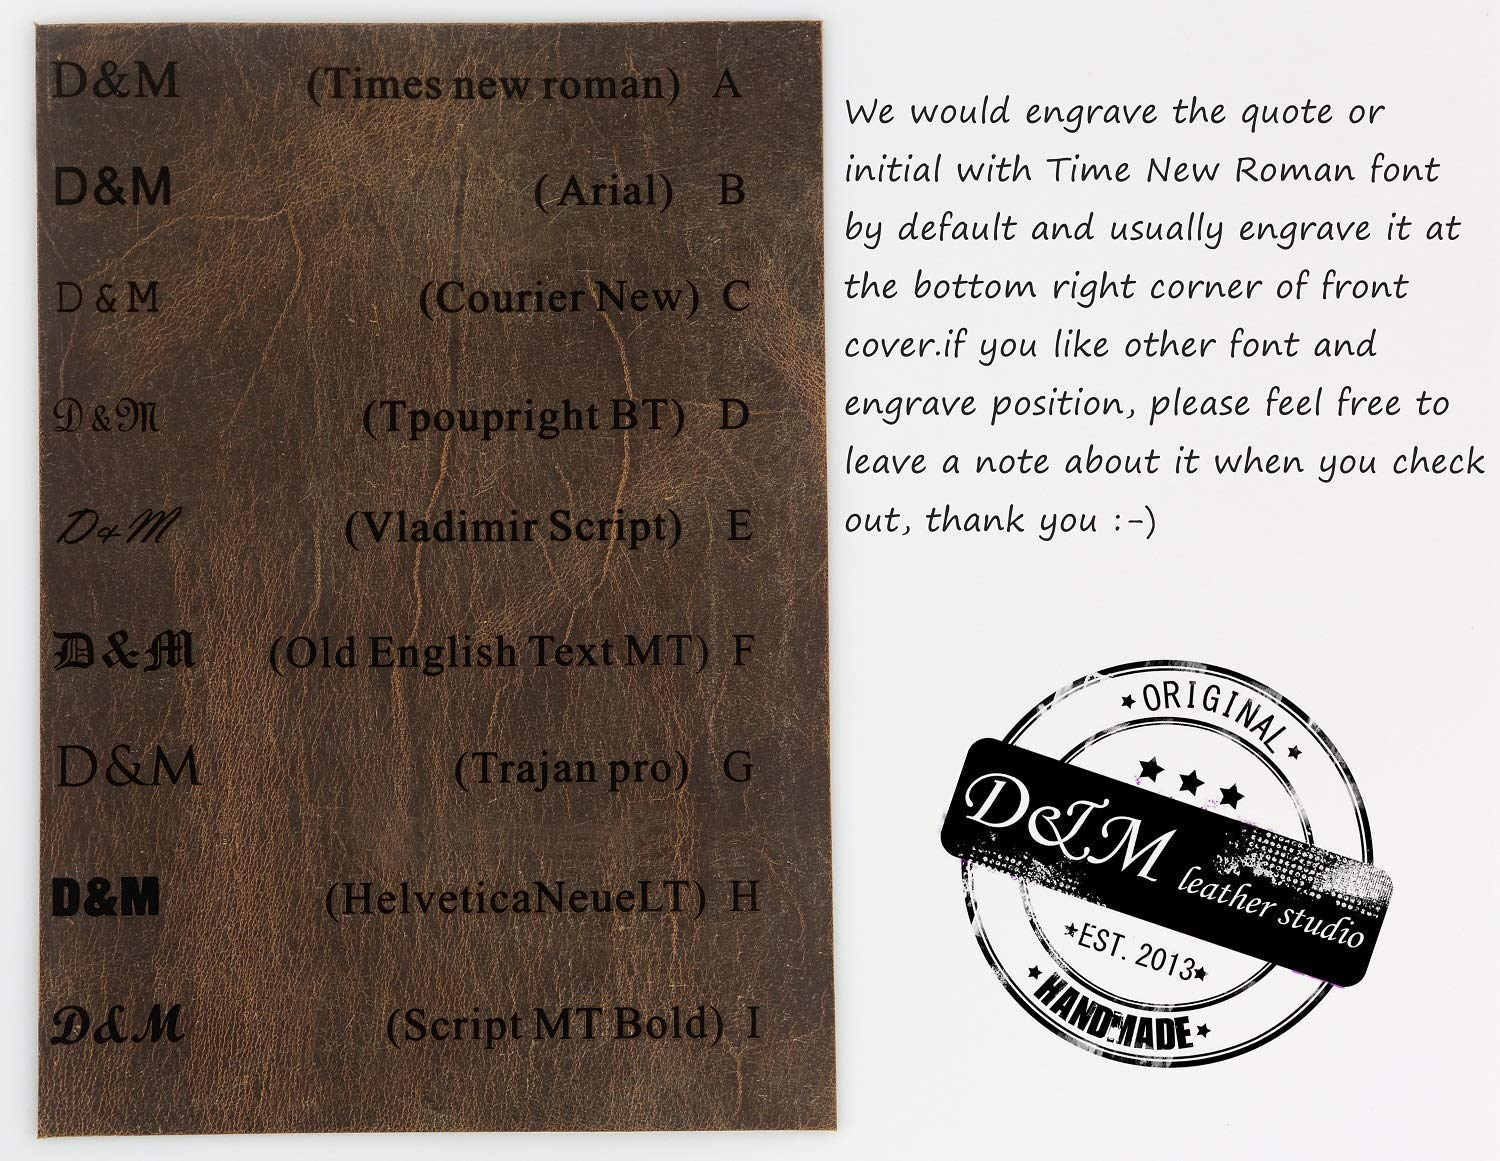 Personalized leather kindle oasis 2 case sleeve simple rustic real leather sleeve for Kindle new oasis 2 2017 KDO05S